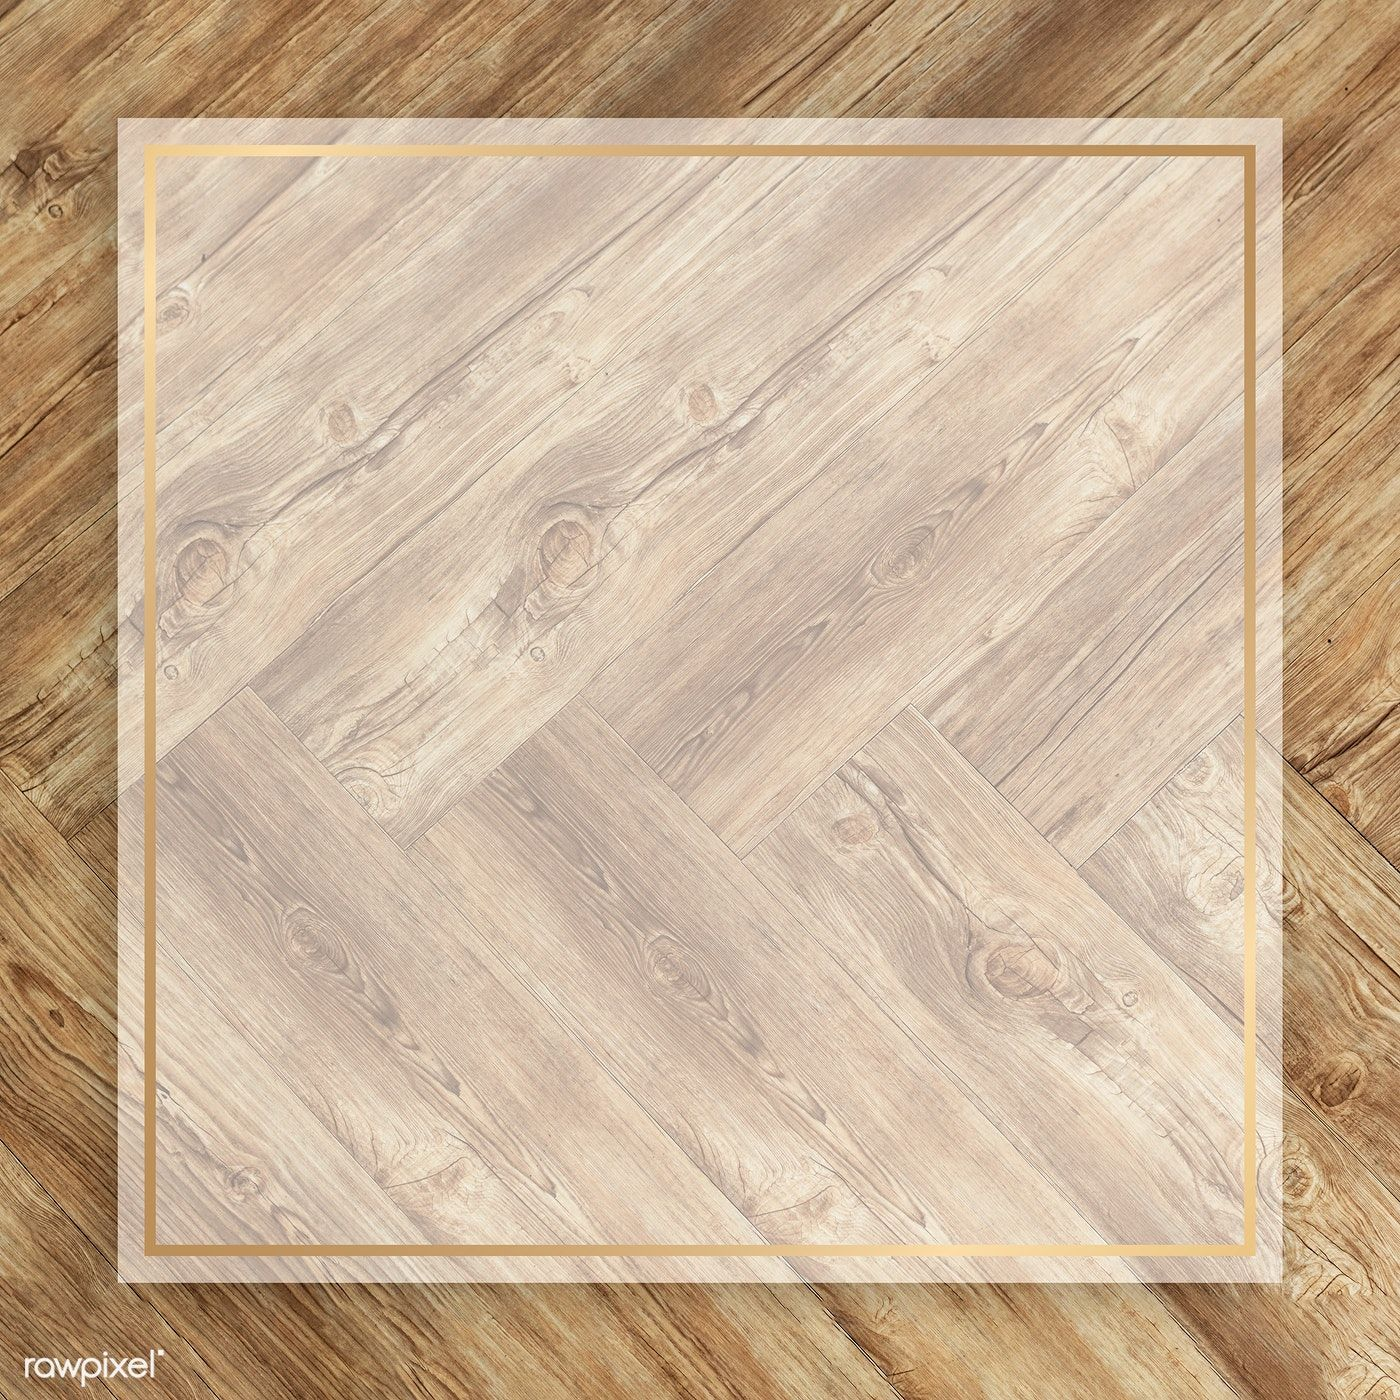 Download Premium Psd Of Blank Golden Square Frame On A Wooden Background In 2020 Square Frames Wooden Background Instagram Frame Template